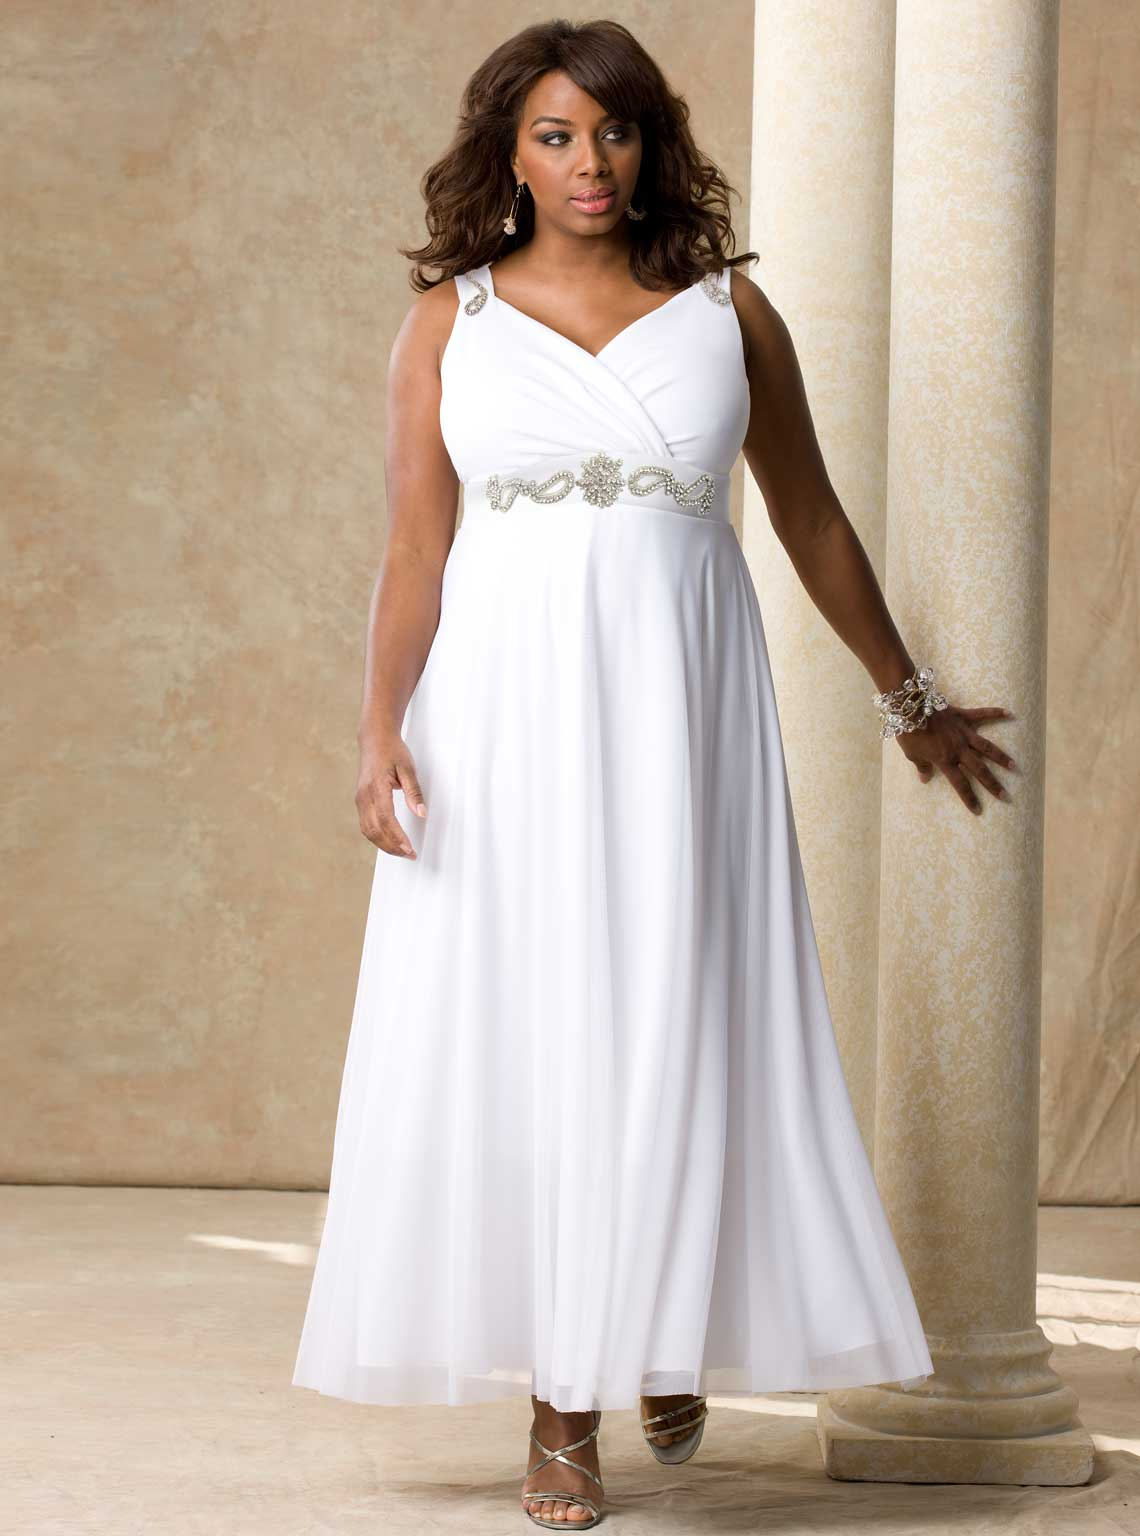 Wedding Dresses Plus Size Bristol : Best wedding ideas searching for an affordable plus size